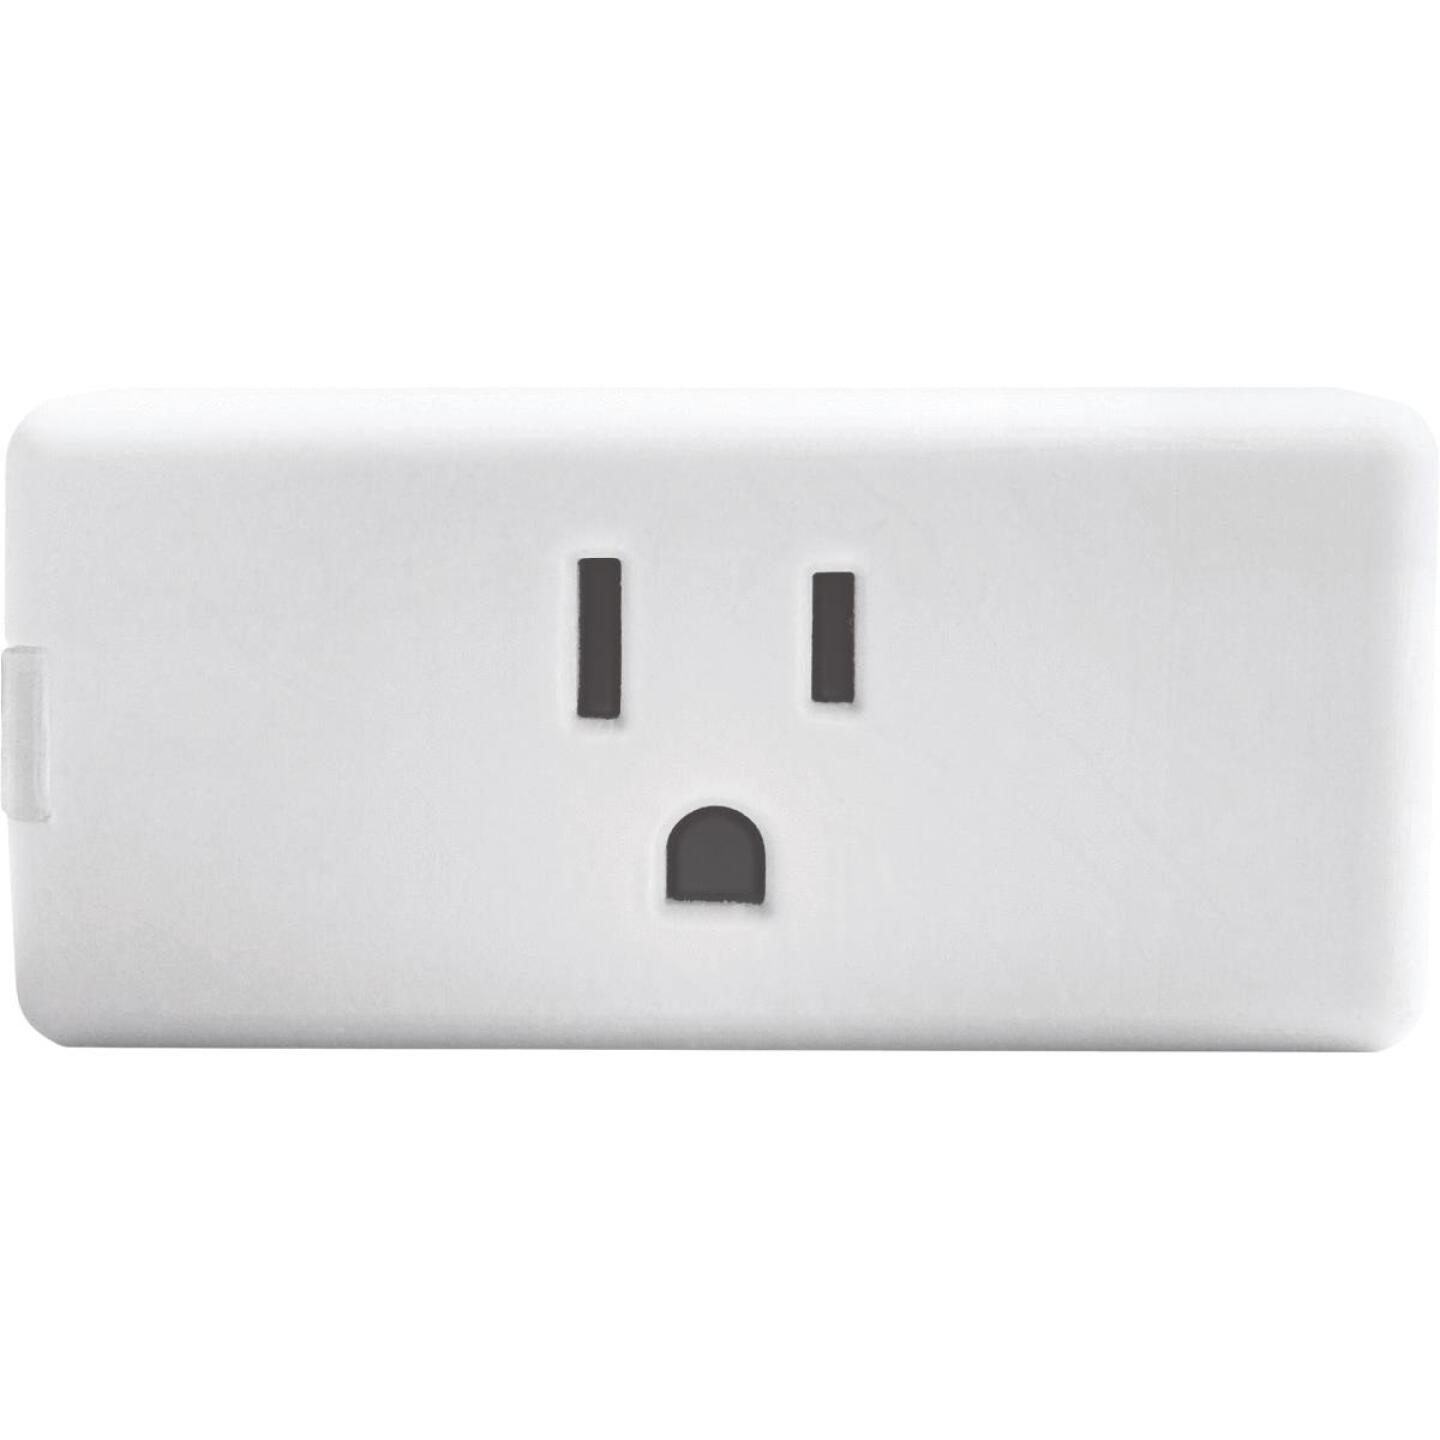 Leviton Decora Smart 1-Outlet White Wi-Fi Plug-In Outlet Image 1